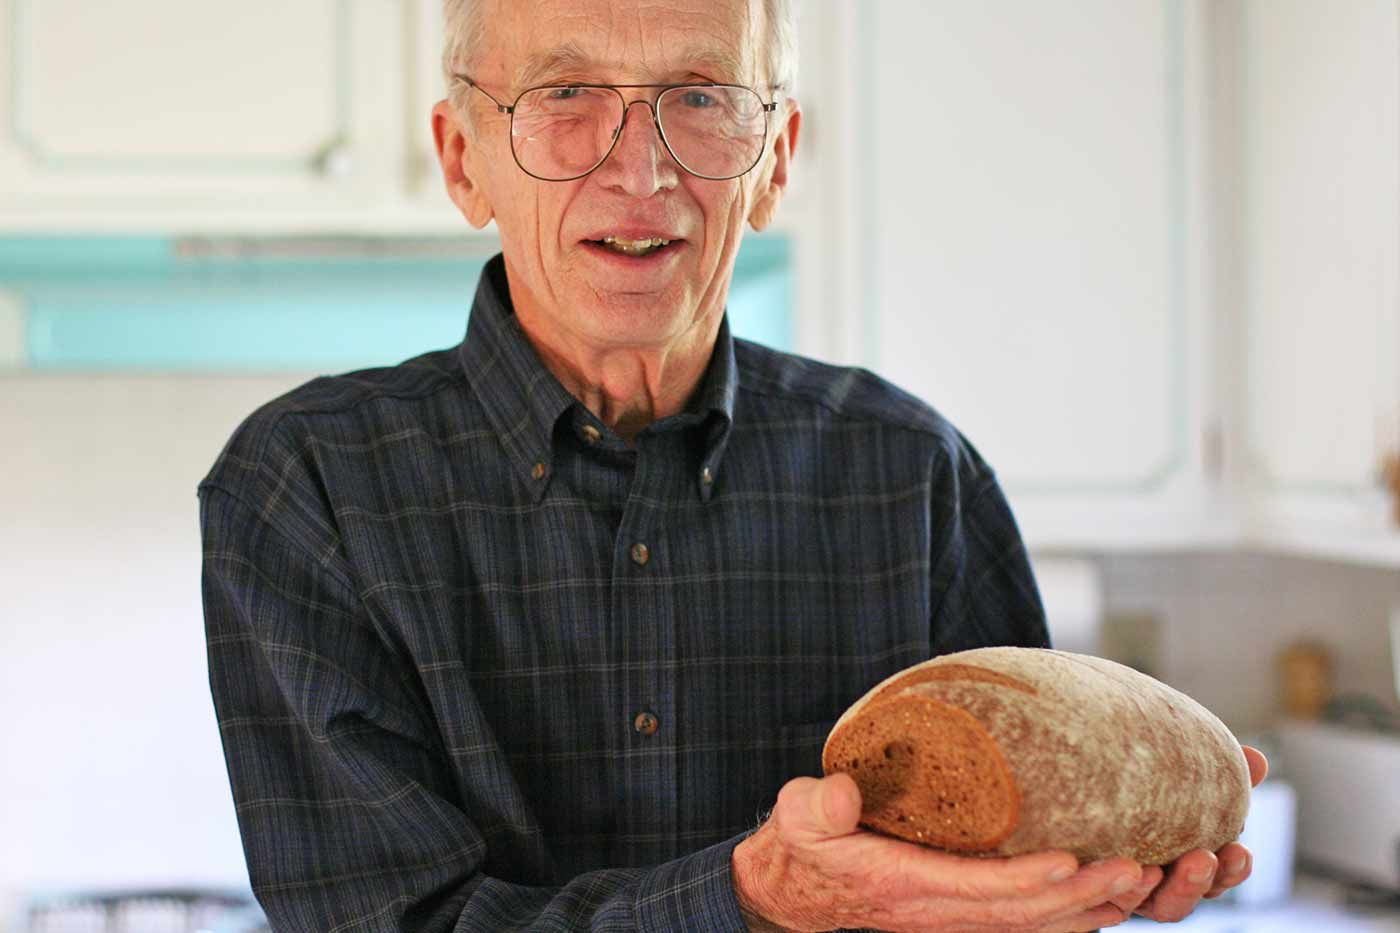 George holding his rye bread